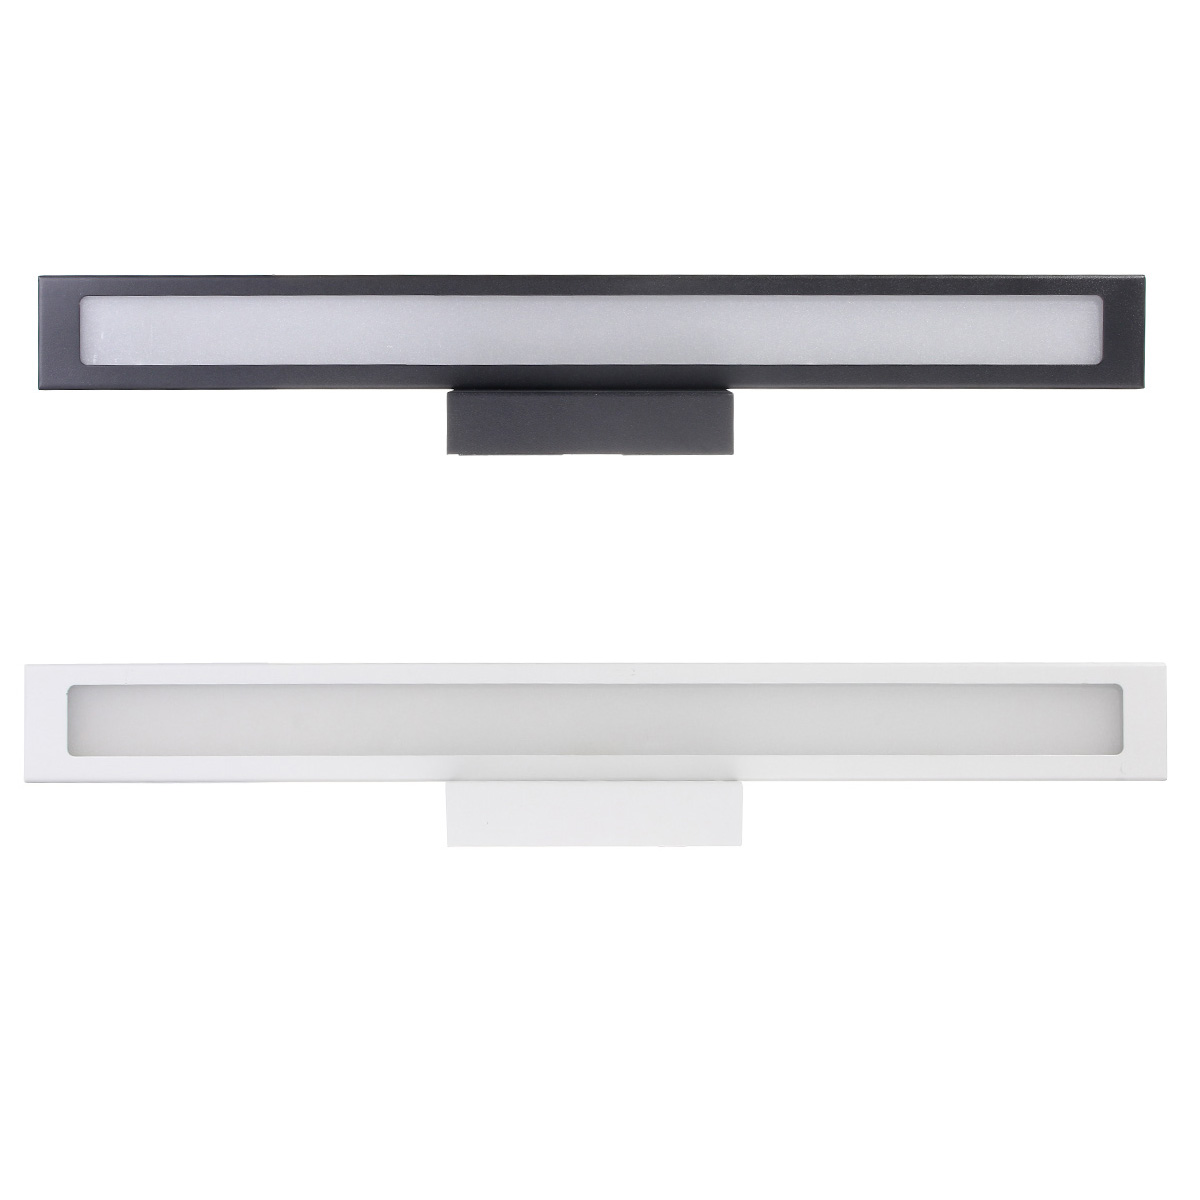 Bathroom Vanity Light Acrylic Led Mirror Front Light Make Up Wall Lamp Fixtures: 55cm 11W 5050 50smd Led Mirror Light Wall Lamp Irror Front Make Up Bathroom Vanity Light Acrylic